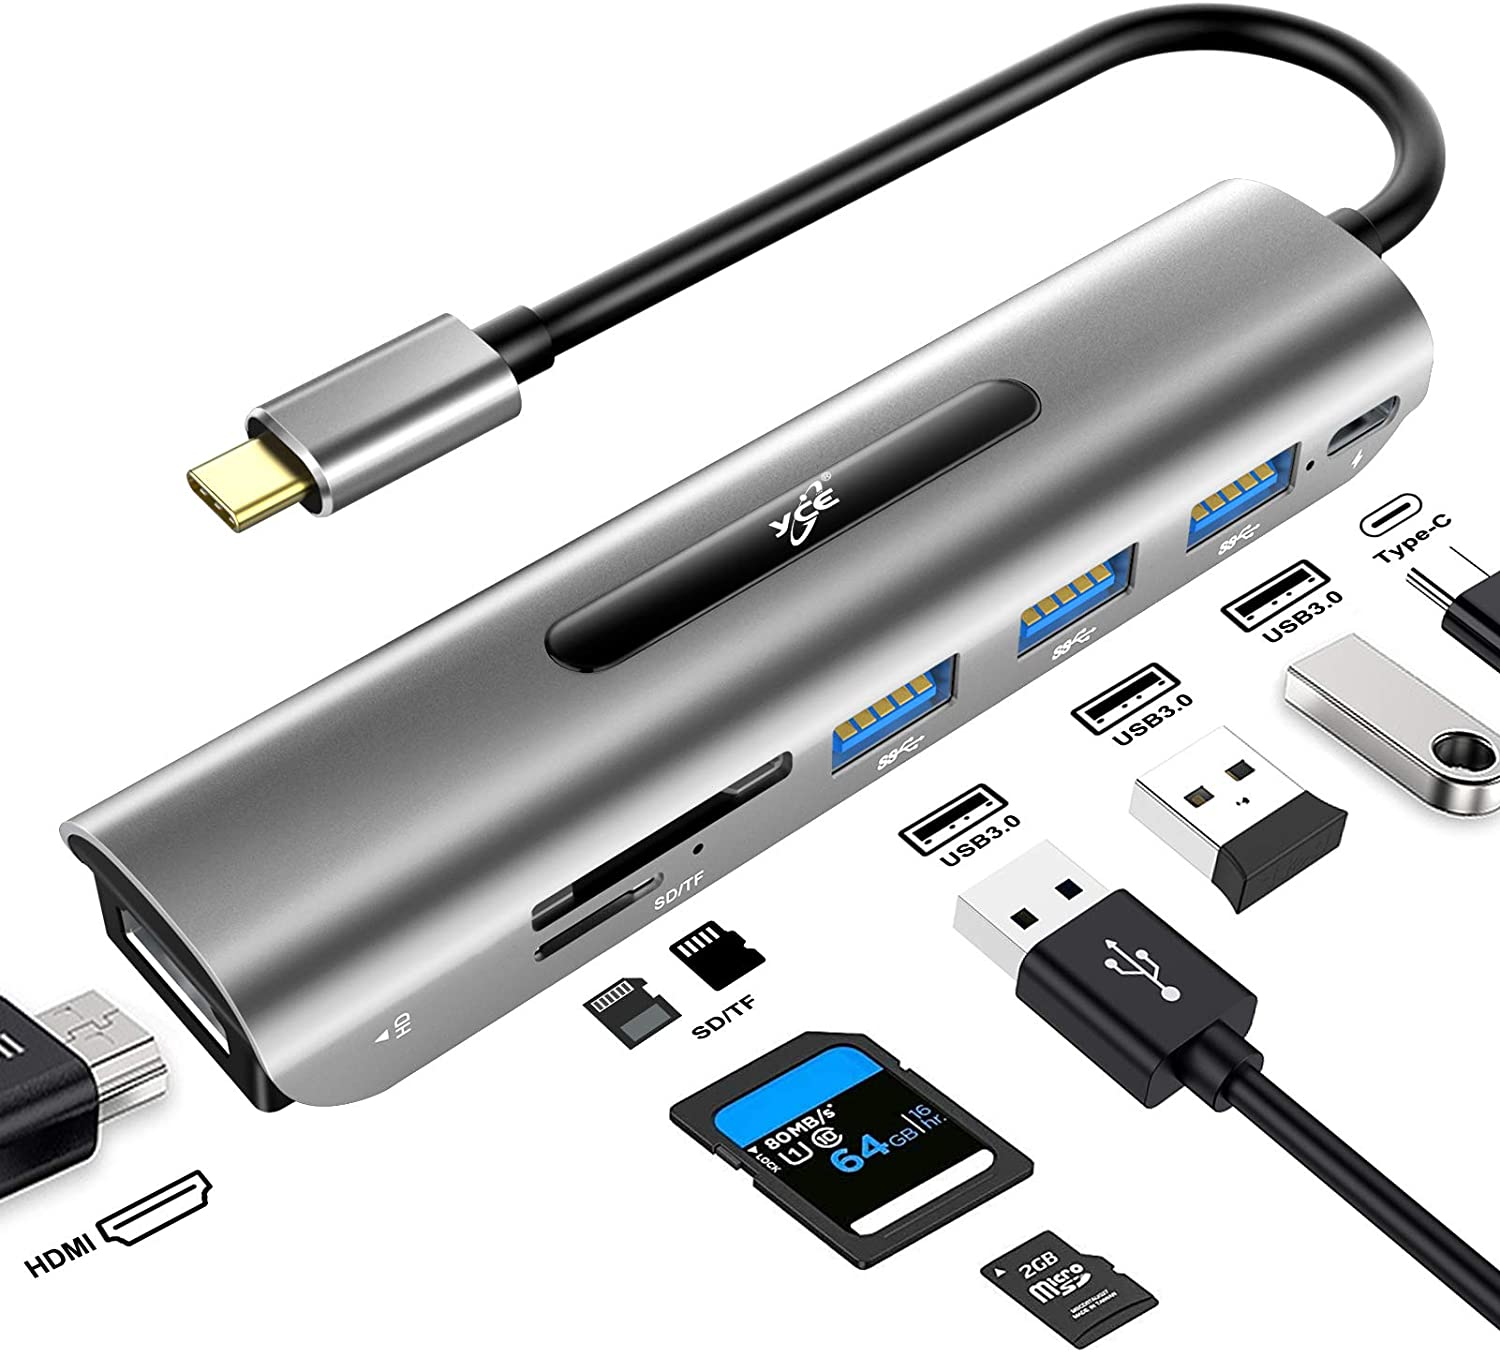 USB C Hub, 7 in 1 USB C to 4K HDMI Adapter with 100W Power Delivery, 3 USB 3.0 Ports, SD/TF Card Readers for MacBook/Pro/Air/iMac/iPad Pro and Type C Laptops Chromebook